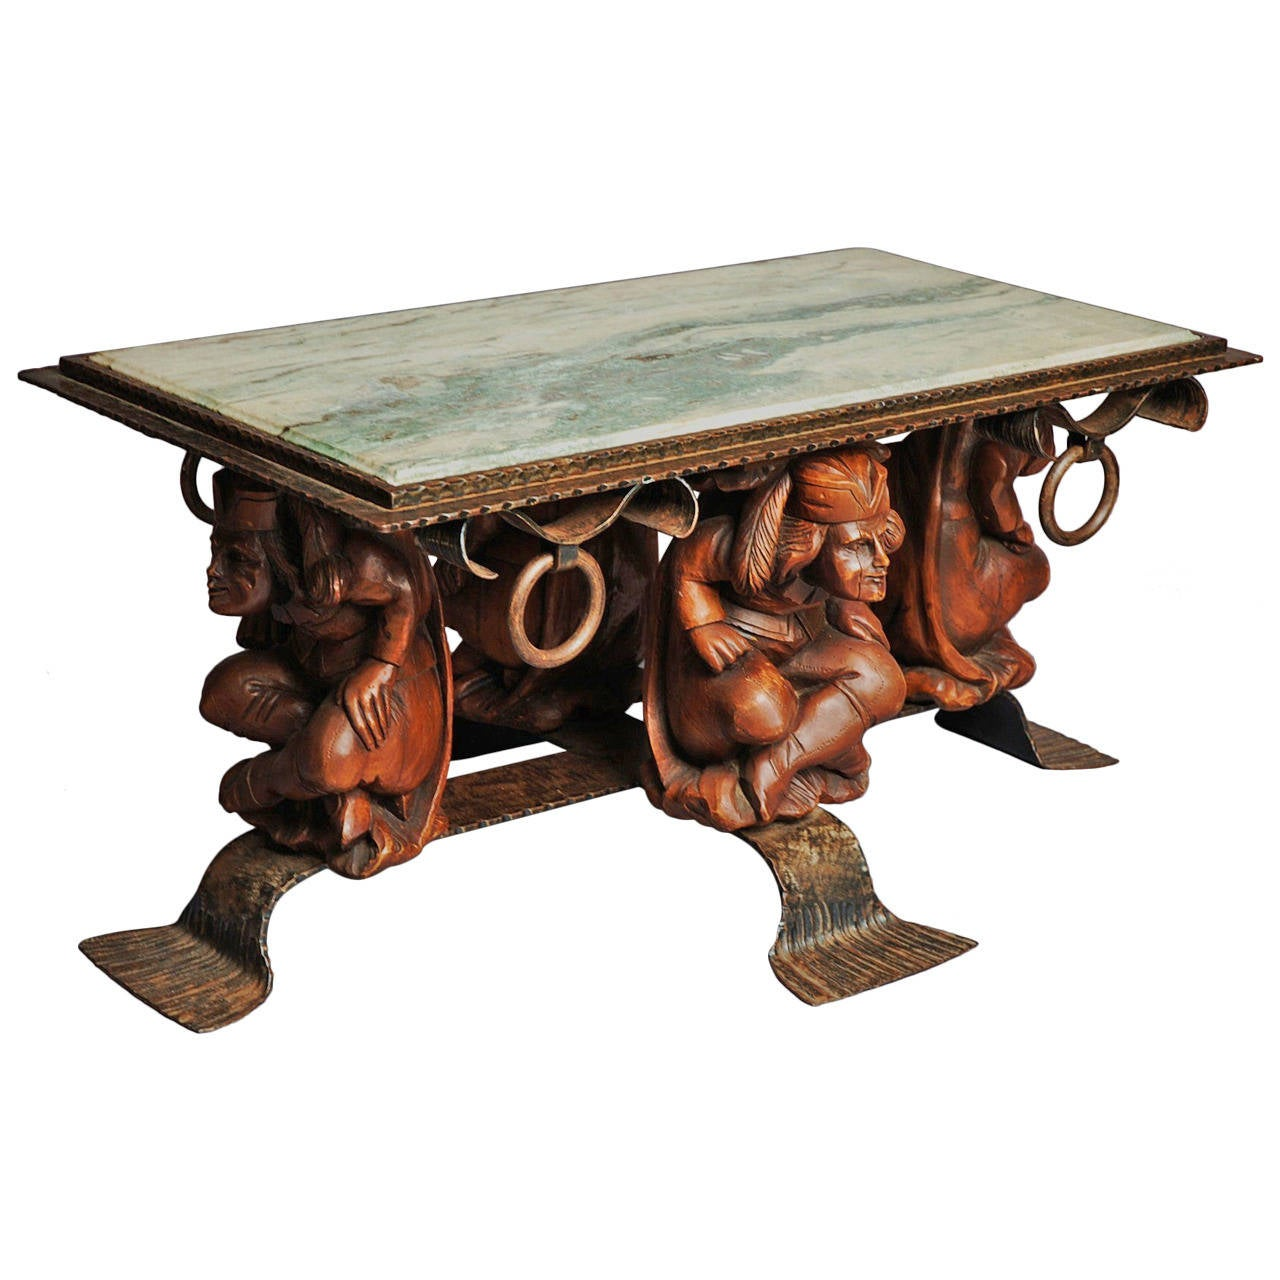 Decorative Marble Top Coffee Table For Sale At 1stdibs